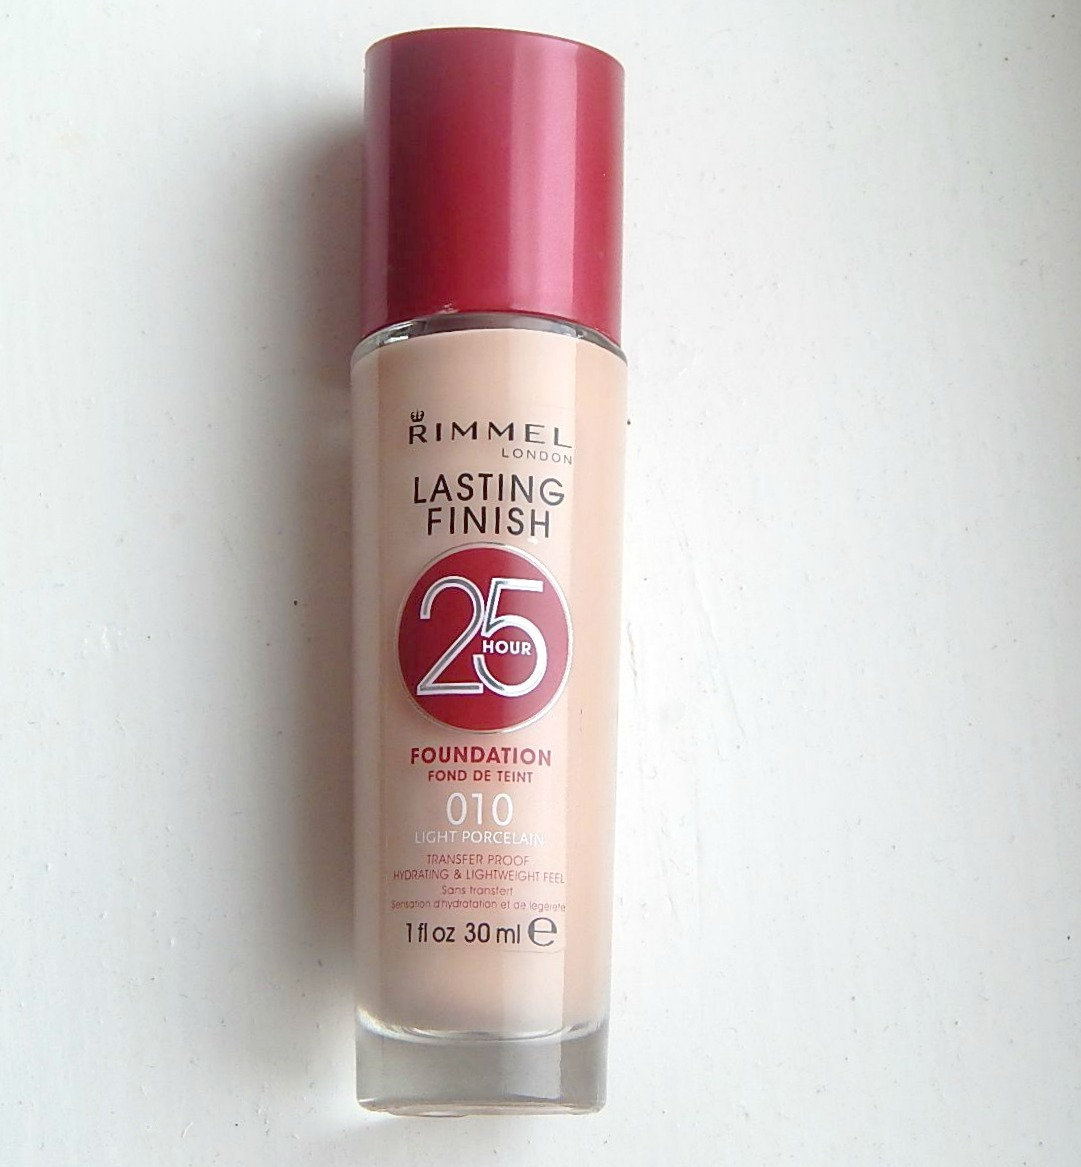 Revlon Colorstay Foundation in Natural Tan 330 - Makeup in